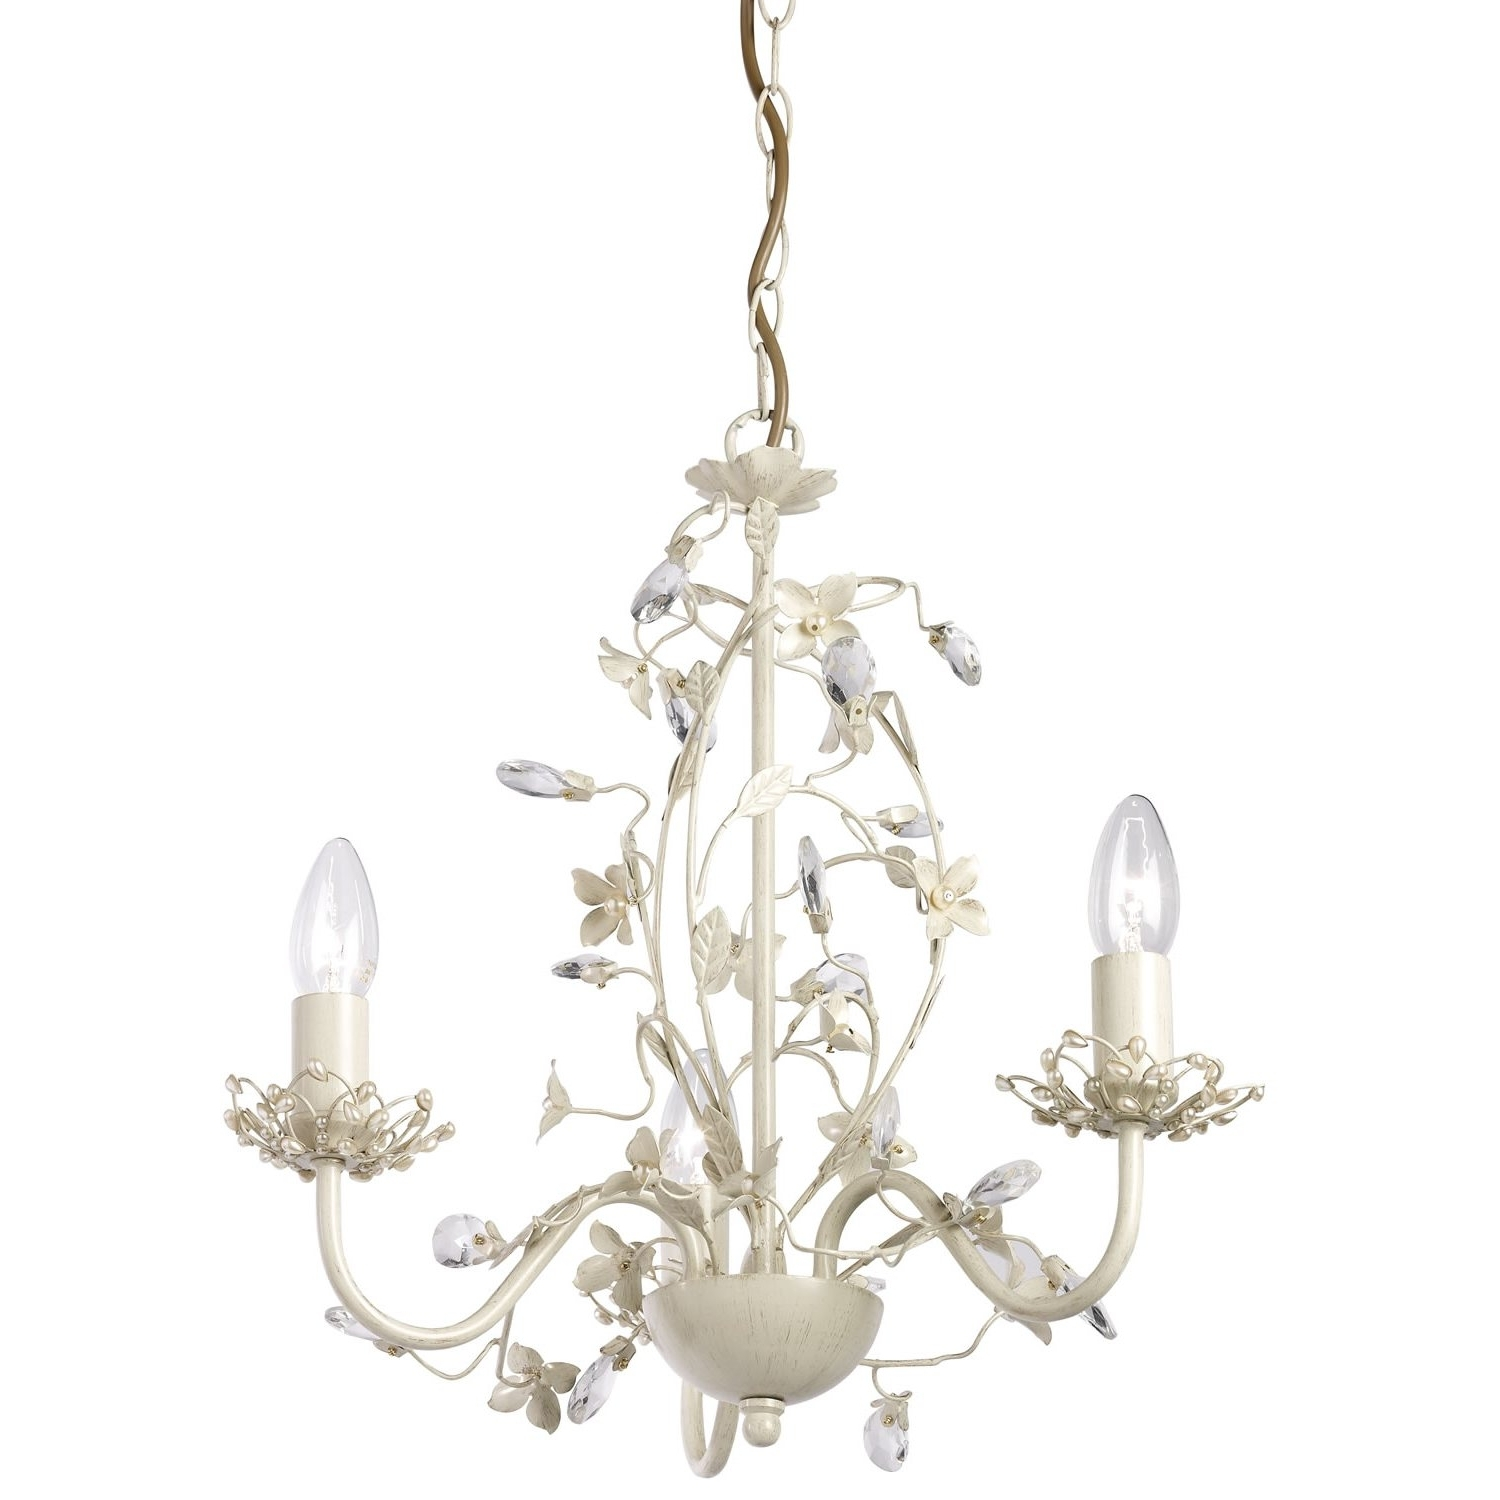 Tirtagucipool Pertaining To Endon Lighting Chandeliers (View 3 of 20)